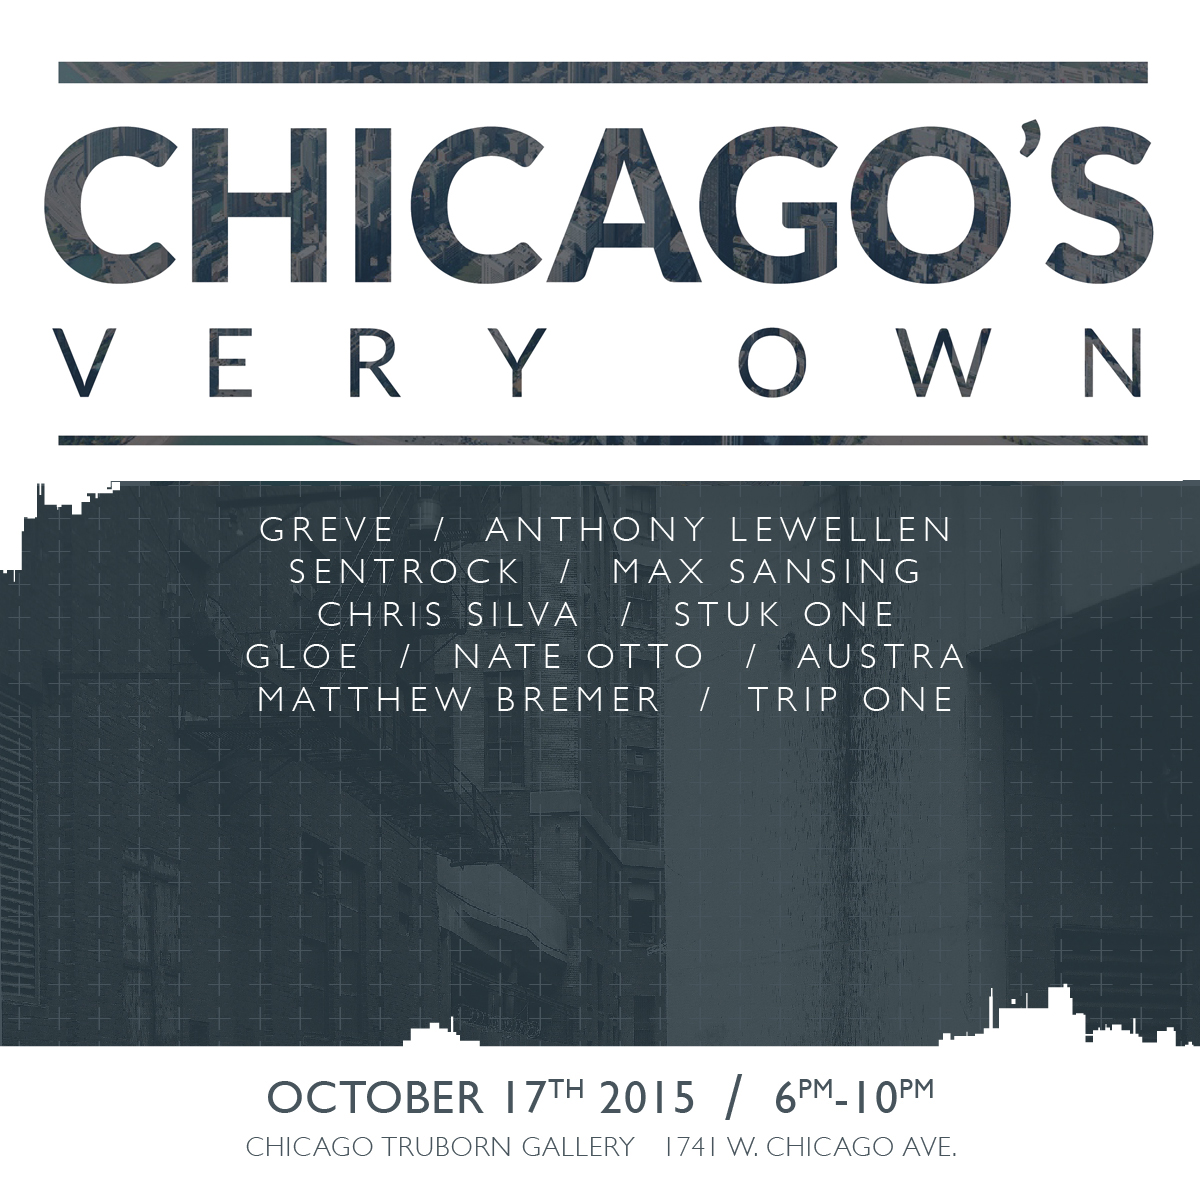 Chicago Truborn  1741 W. Chicago Ave.  IL 60622  (773) 420-9764   Chicago, Stand up! Join us for an evening filled with iconic and underground Chicago themed artwork created by some of the city's most influential voices.    One of Chicago's greatest attributes is its continually thriving and self sustained community of artists. Perhaps, most impressive, is the way our city has embraced our various talents and backgrounds by offering unbounded support and ceaseless inspiration. The goal of this show is to encapsulate the epic feeling of greatness and diversity we experience daily. It is in this spirit, we were compelled to manifest all this city has evoked in it's inhabitants.    Whether they were born here, grew up here, or transplanted here- this show is comprised of 100% Chicago based artists who are putting on for our city!   FEATURING:  GREVE // ANTHONY LEWELLEN // SENTROCK MAX SANSING // CHRIS SILVA // STUK ONE GLOE ONE // NATE OTTO // AUSTRA COLOUR OUT OF SPACE // TRIP ONE